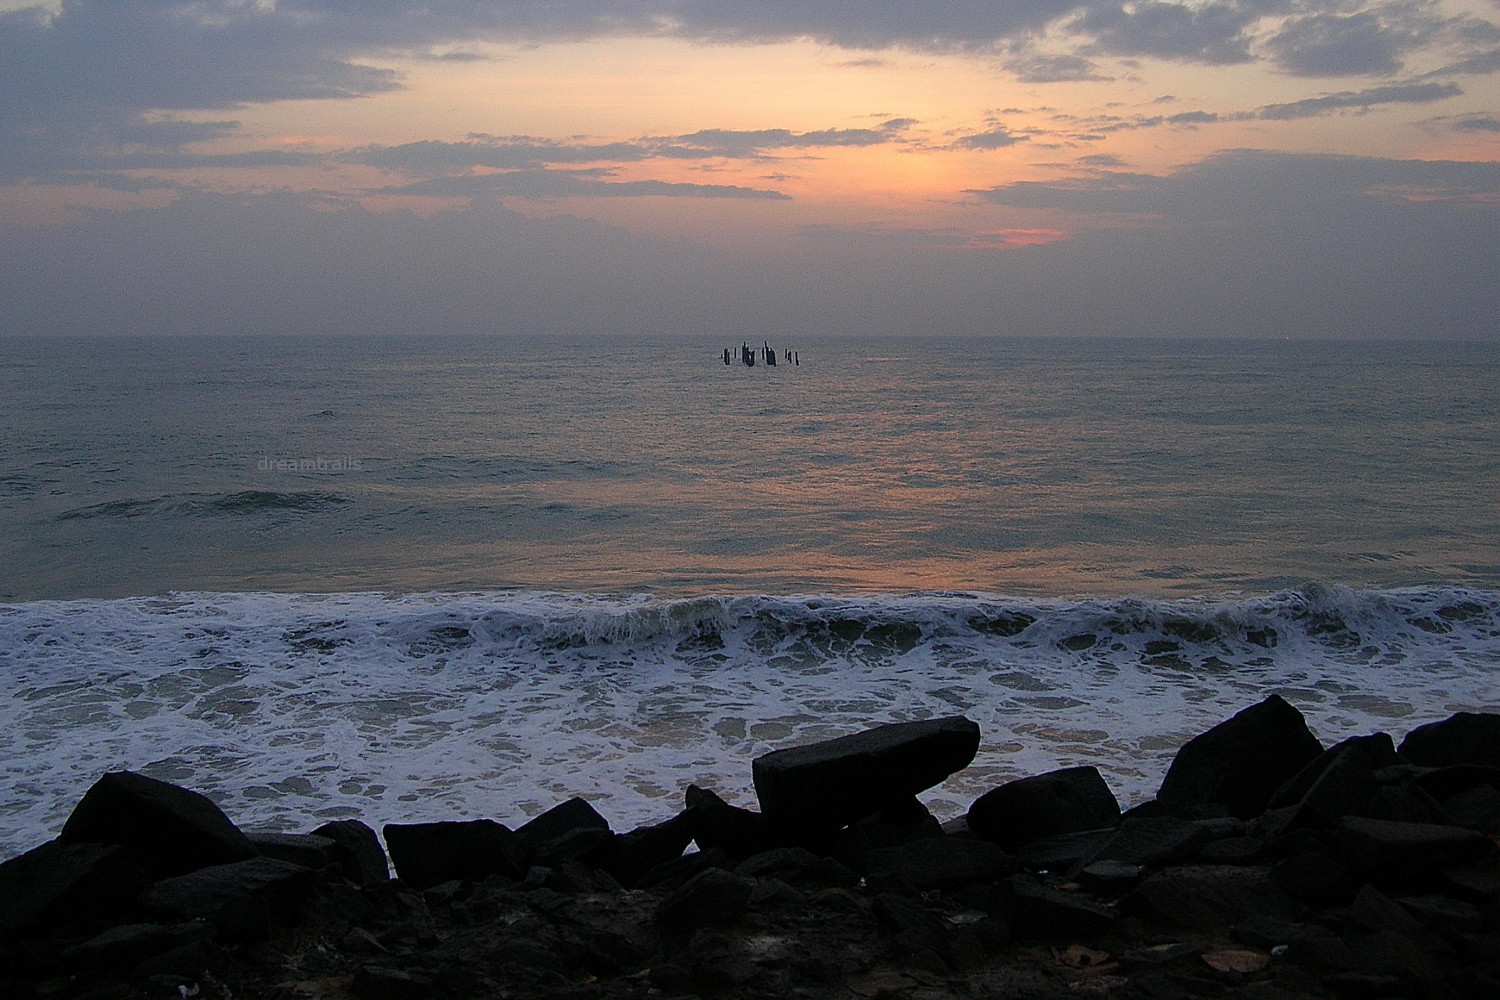 Rock/Promenade Beach, Pondicherry